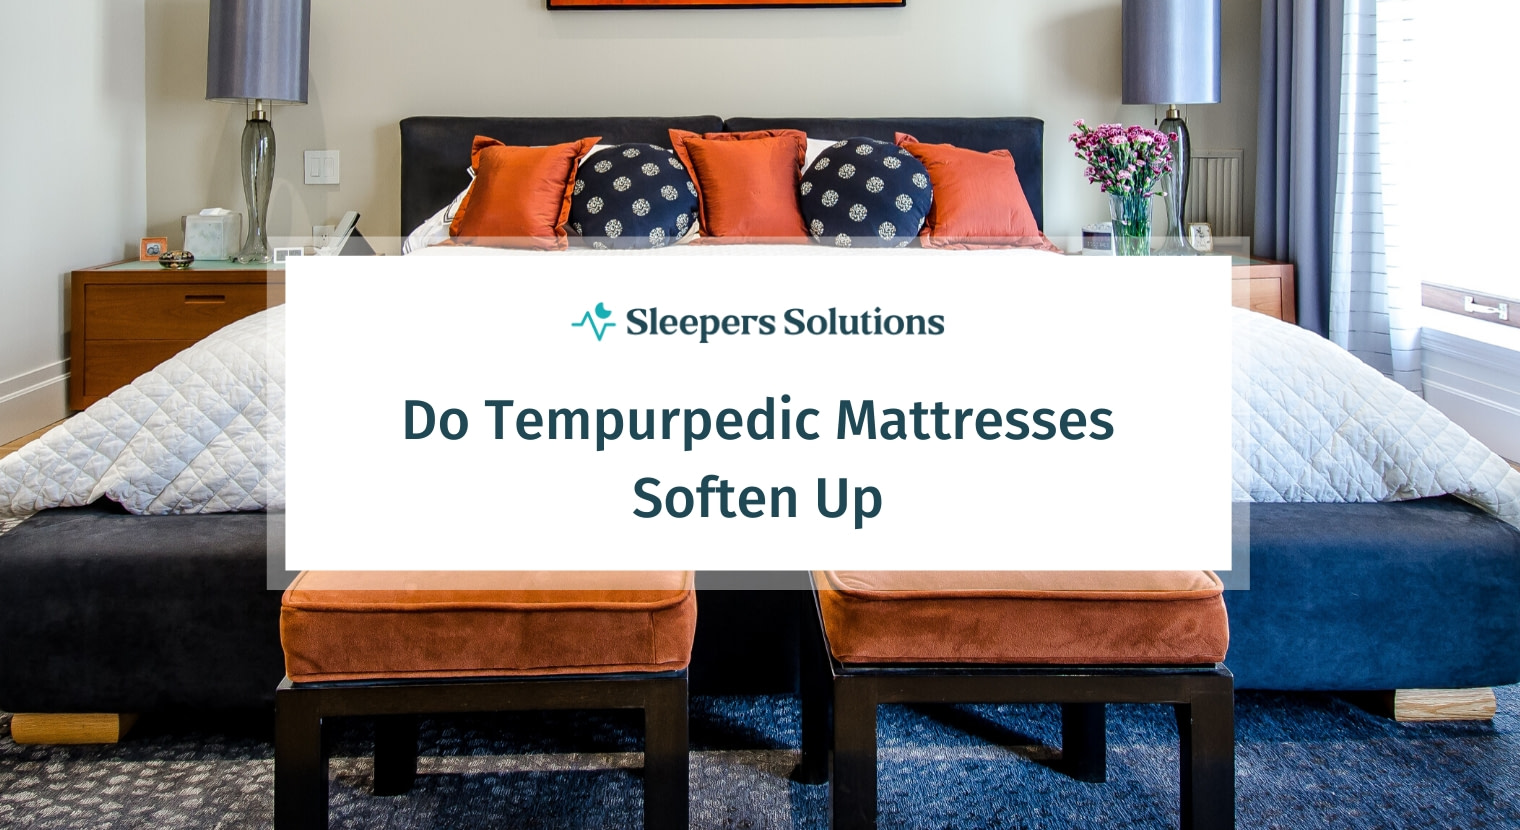 Do Tempurpedic Mattresses Soften Up